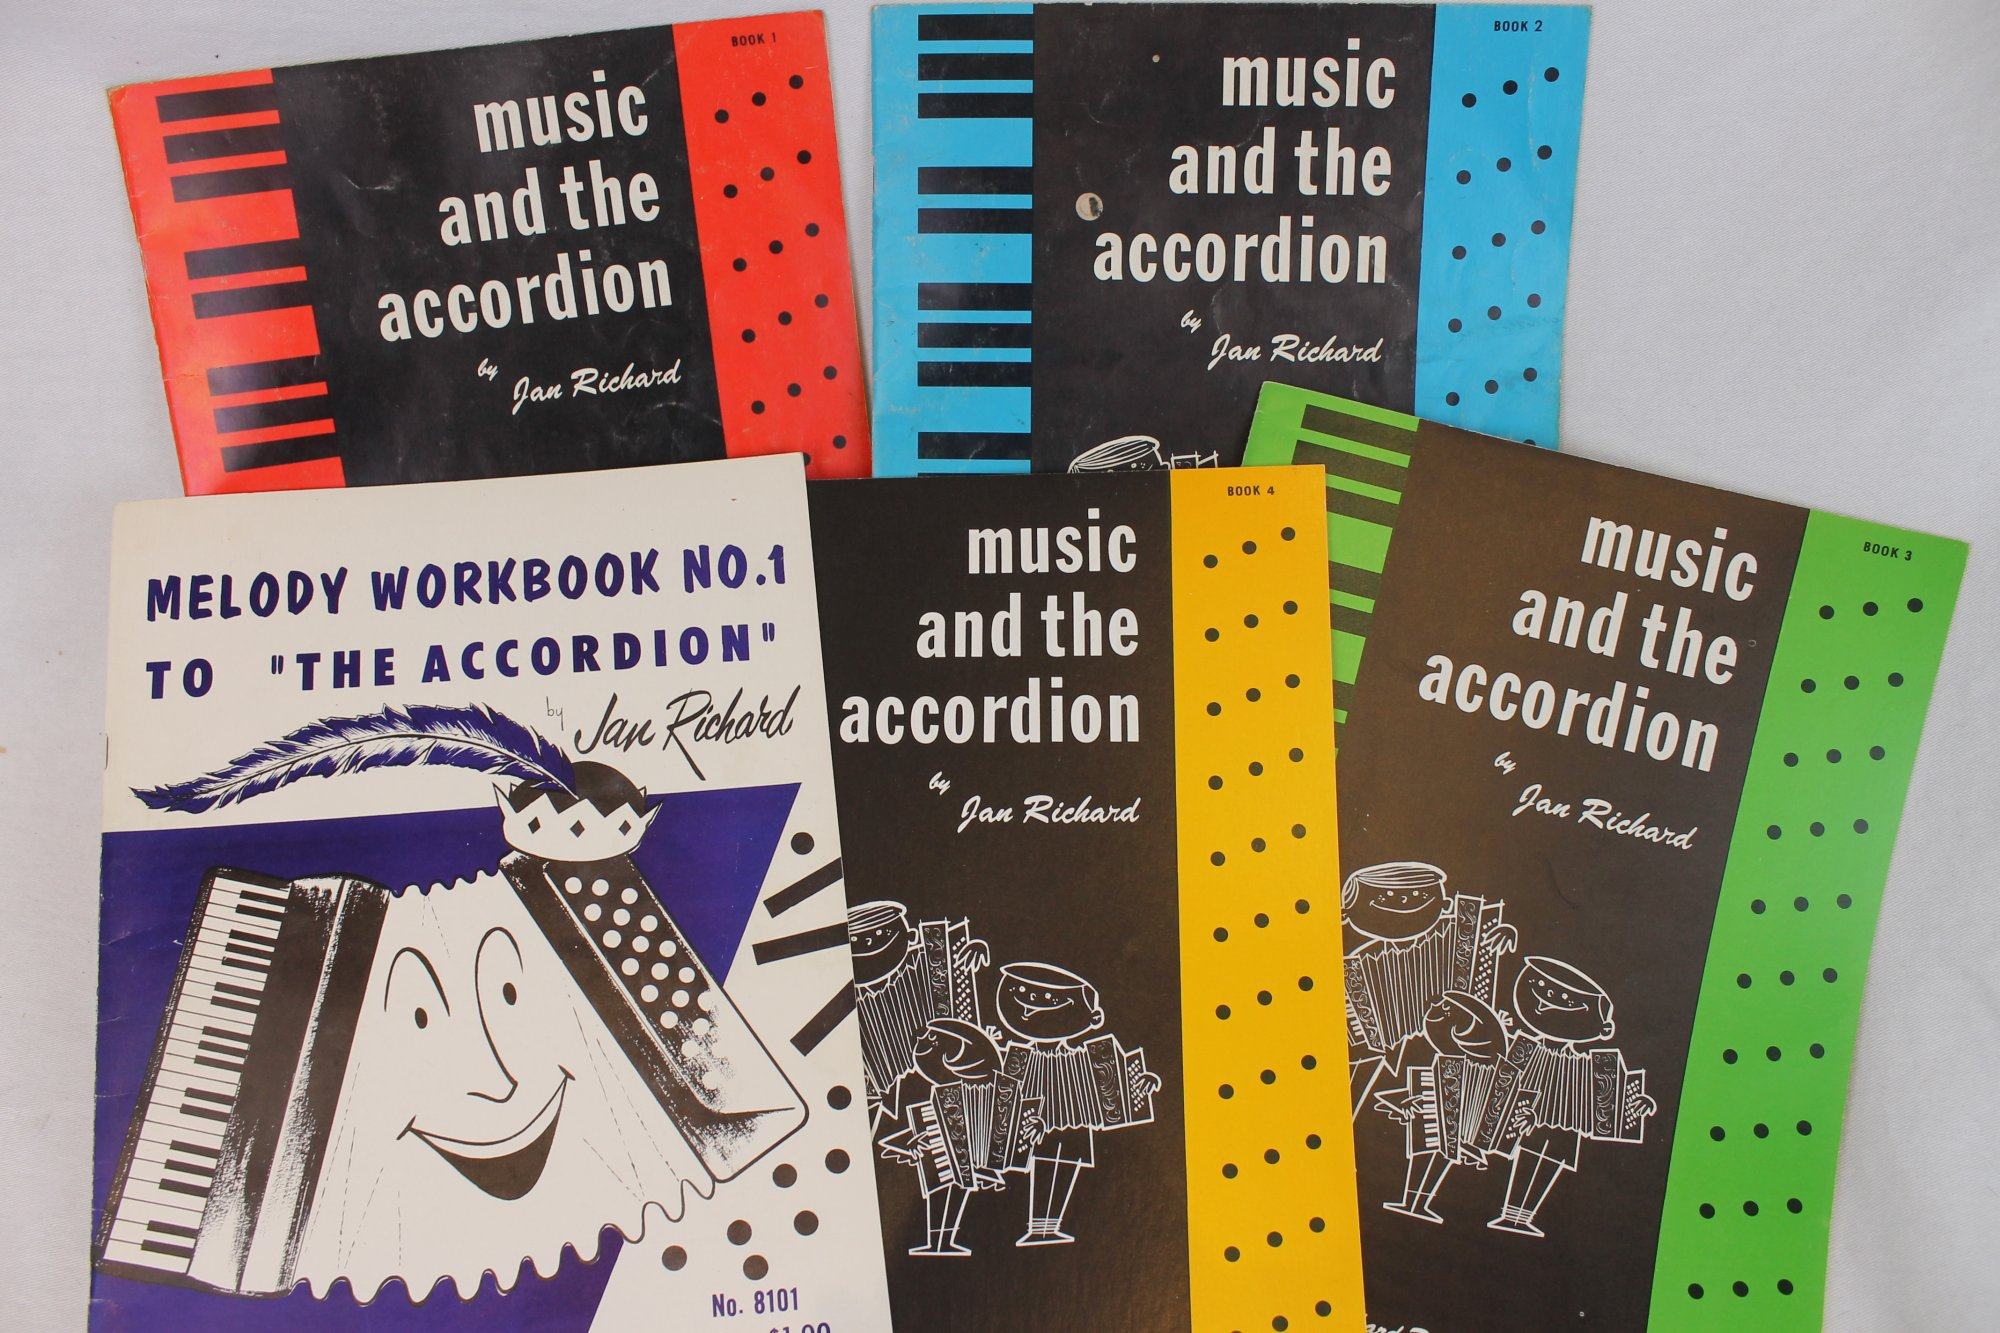 Lot of 5 Used Accordion Books - Music and the Accordion: A Beginner's Accordion Method Series